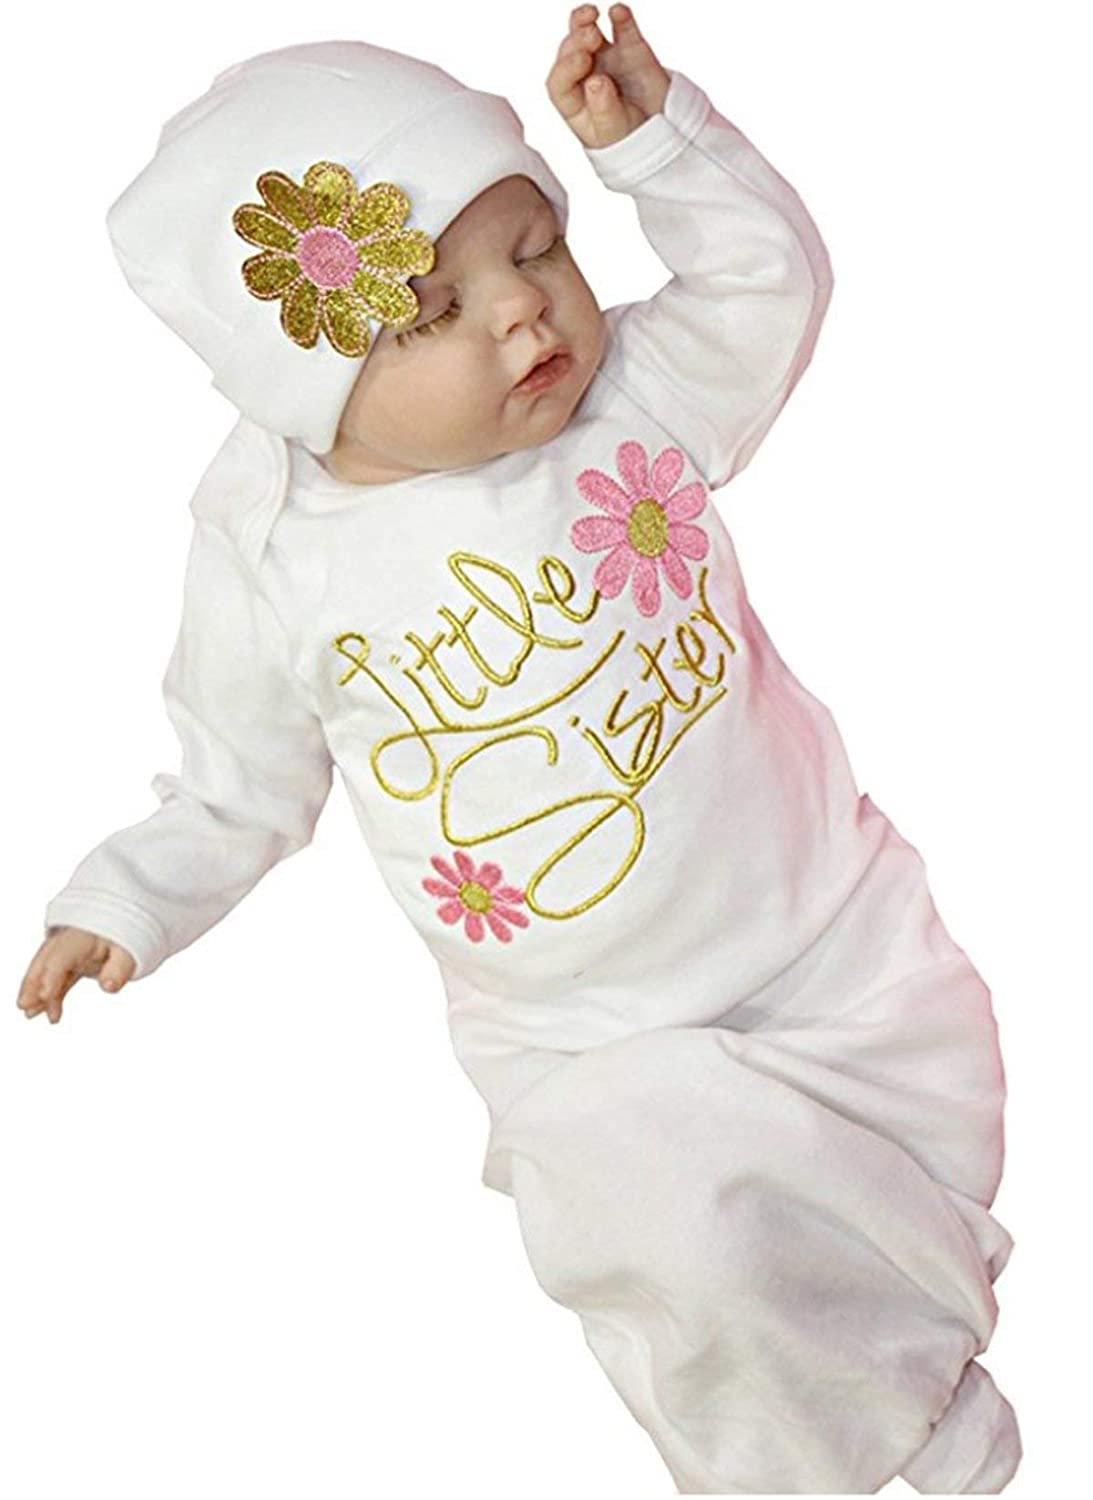 Yi Xian Newborn Infant Girls Take Home Outfit Girl Gift Clothes Set Baby Gown